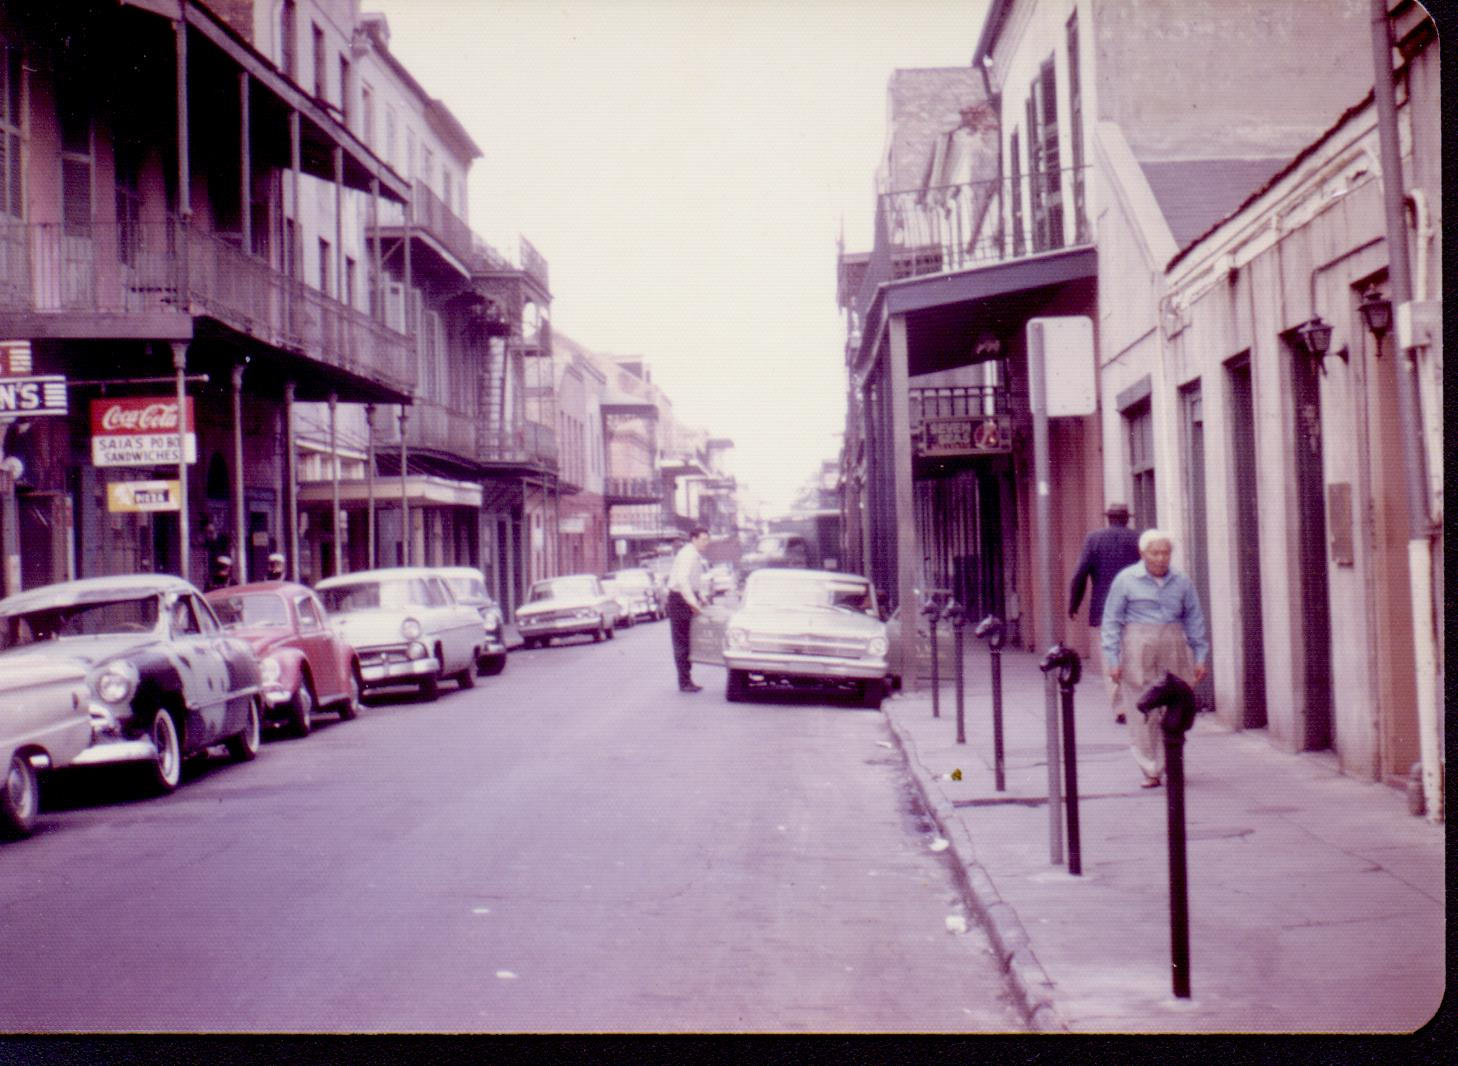 Tally Ho Pictures Of Two Famous Old New Orleans French Quarter